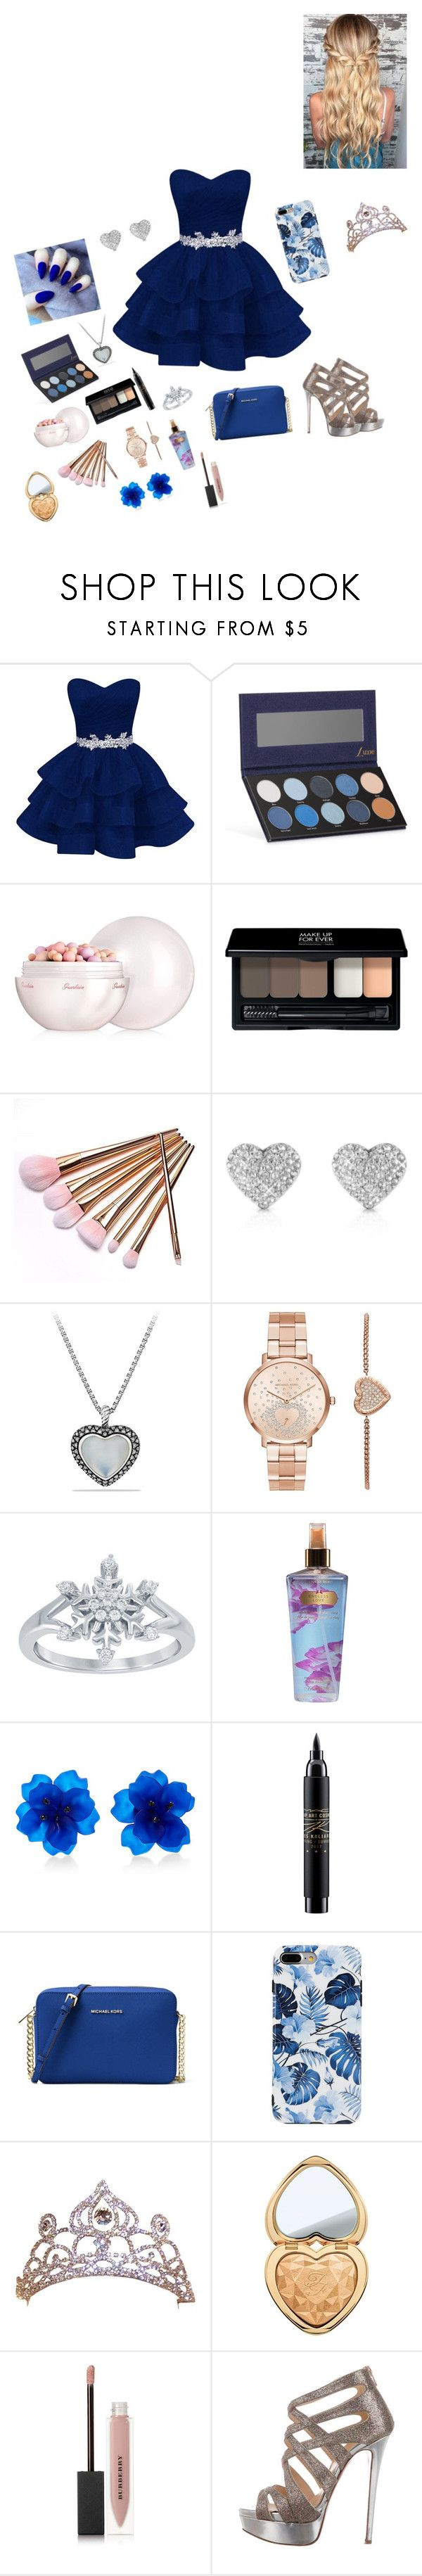 """Homecoming Queen"" by princessmalfoy16 ❤ liked on Polyvore featuring Luxie, Guerlain, MAKE UP FOR EVER, Michael Kors, David Yurman, Disney, Victoria's Secret, Matthew&Melka, MAC Cosmetics and MICHAEL Michael Kors"